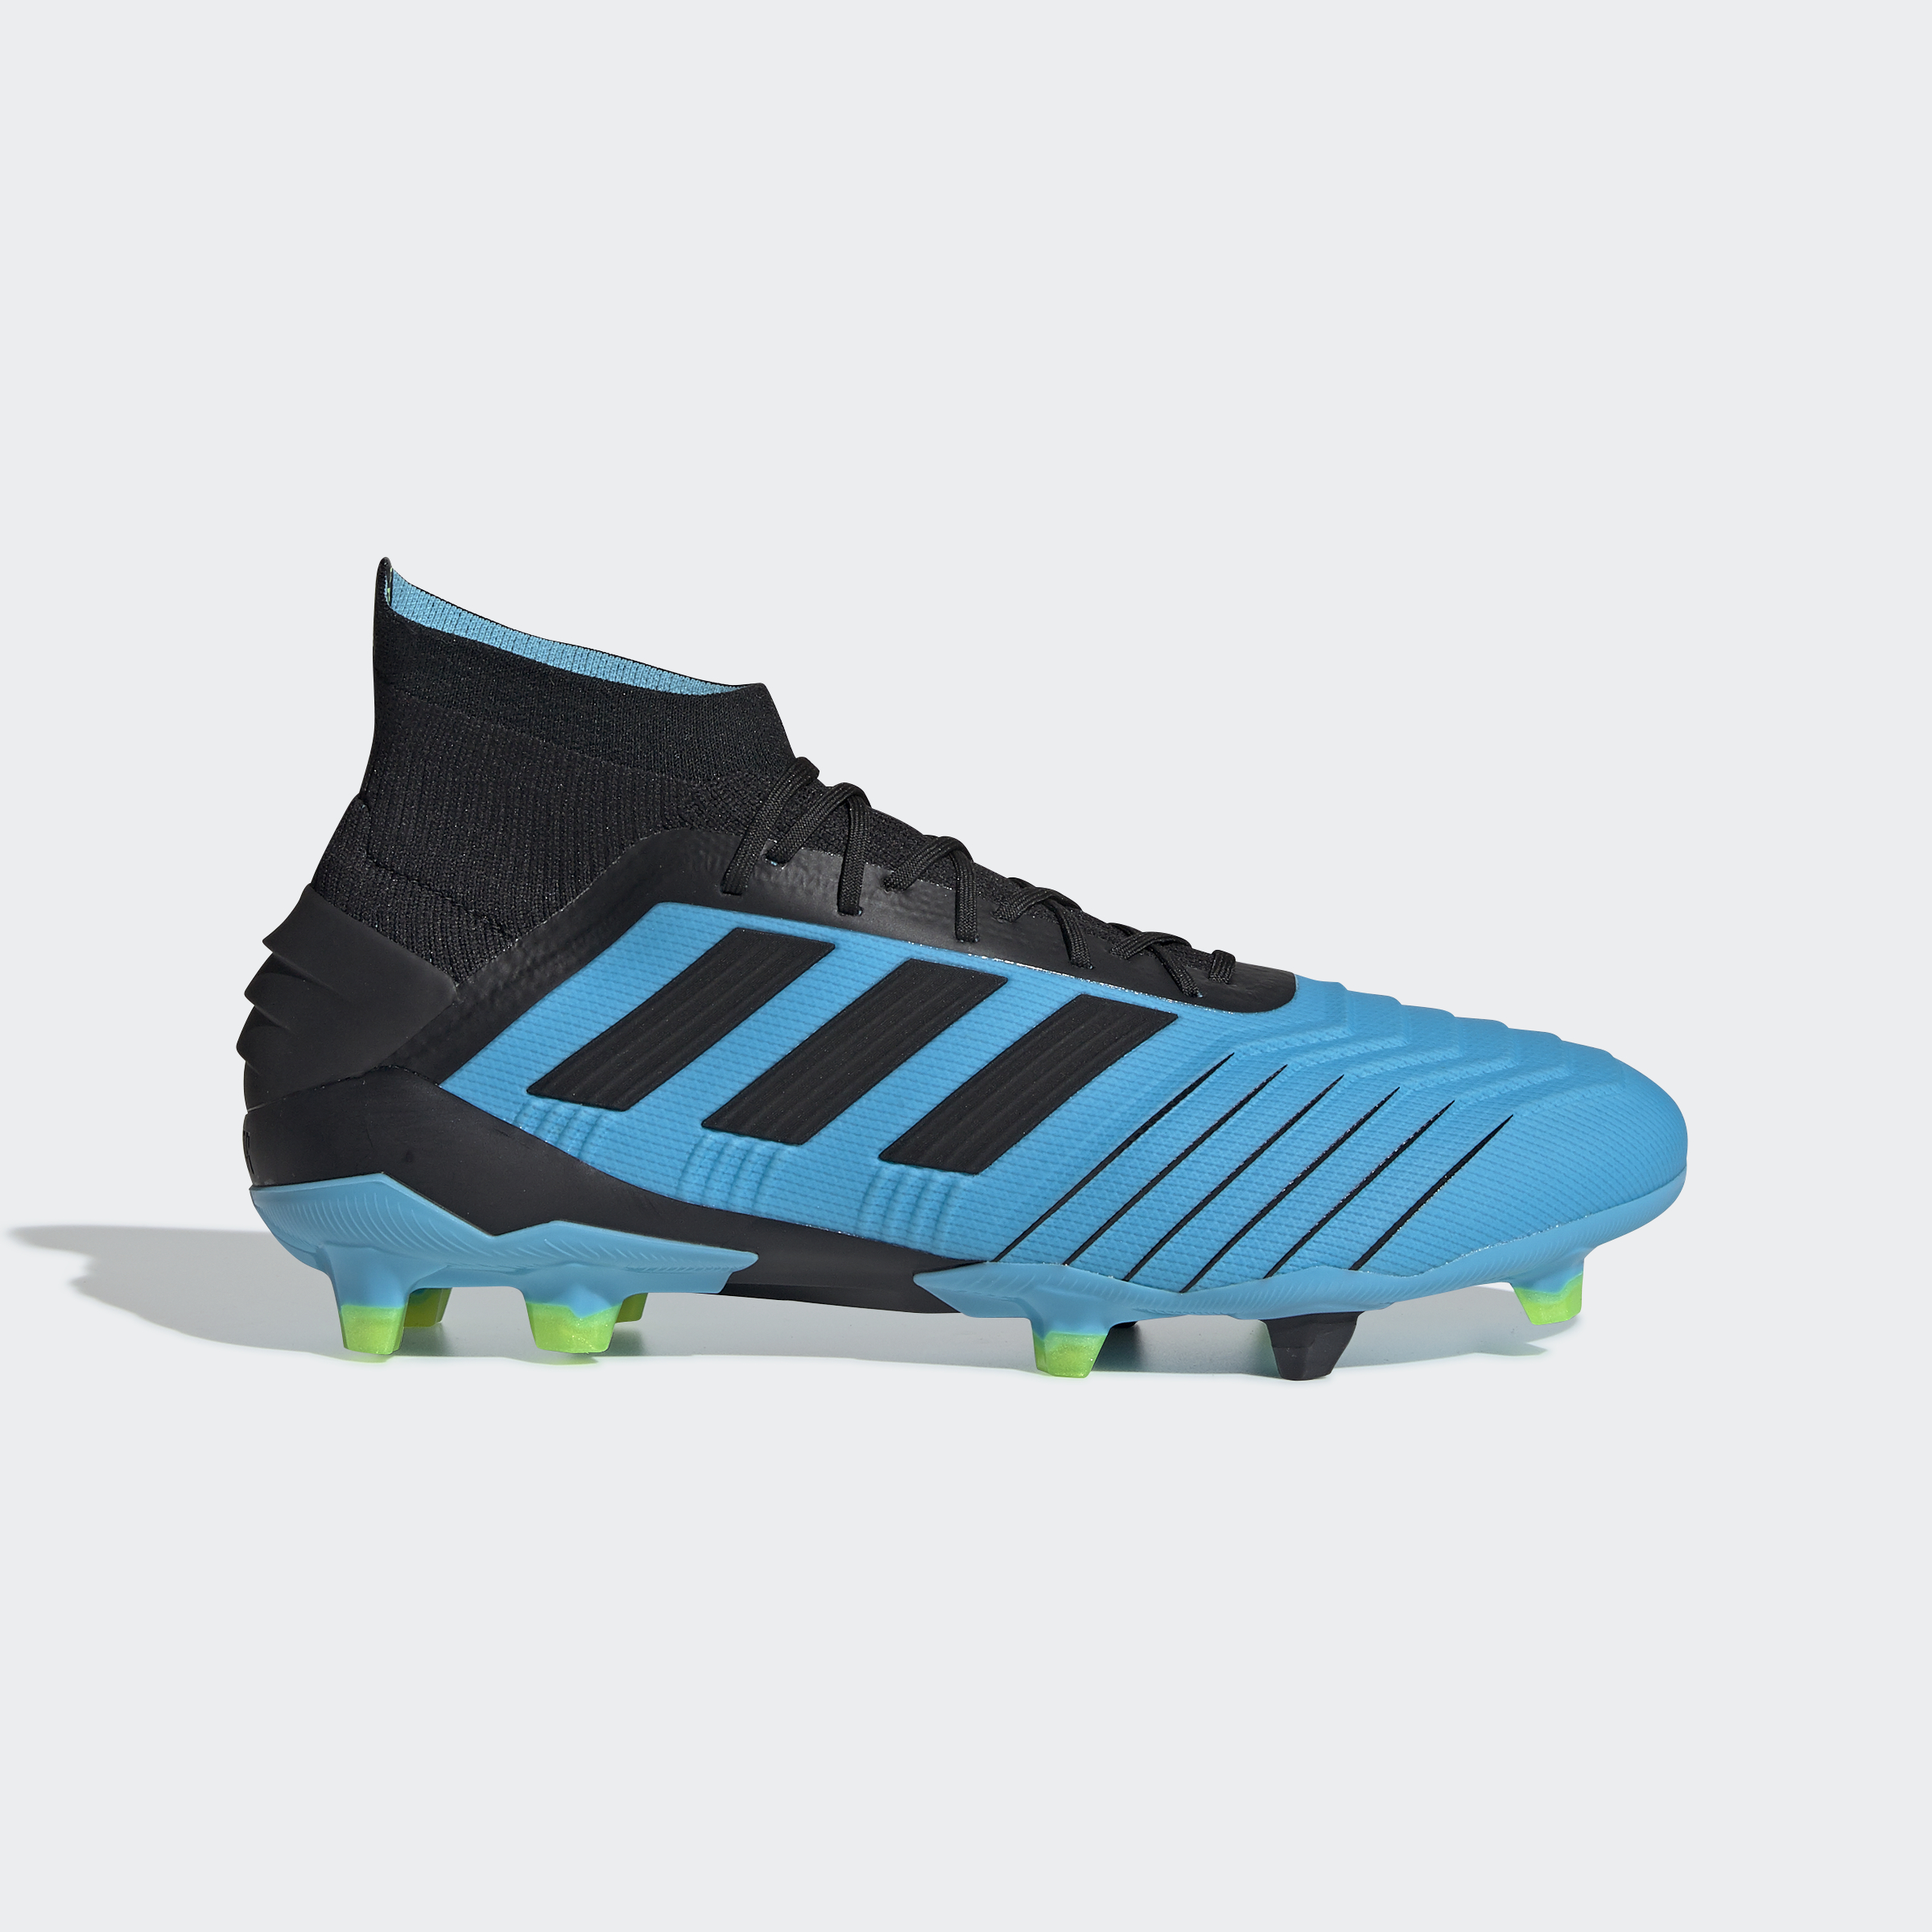 adidas-Predator-19-1-Firm-Ground-Cleats-Football-Boots thumbnail 21